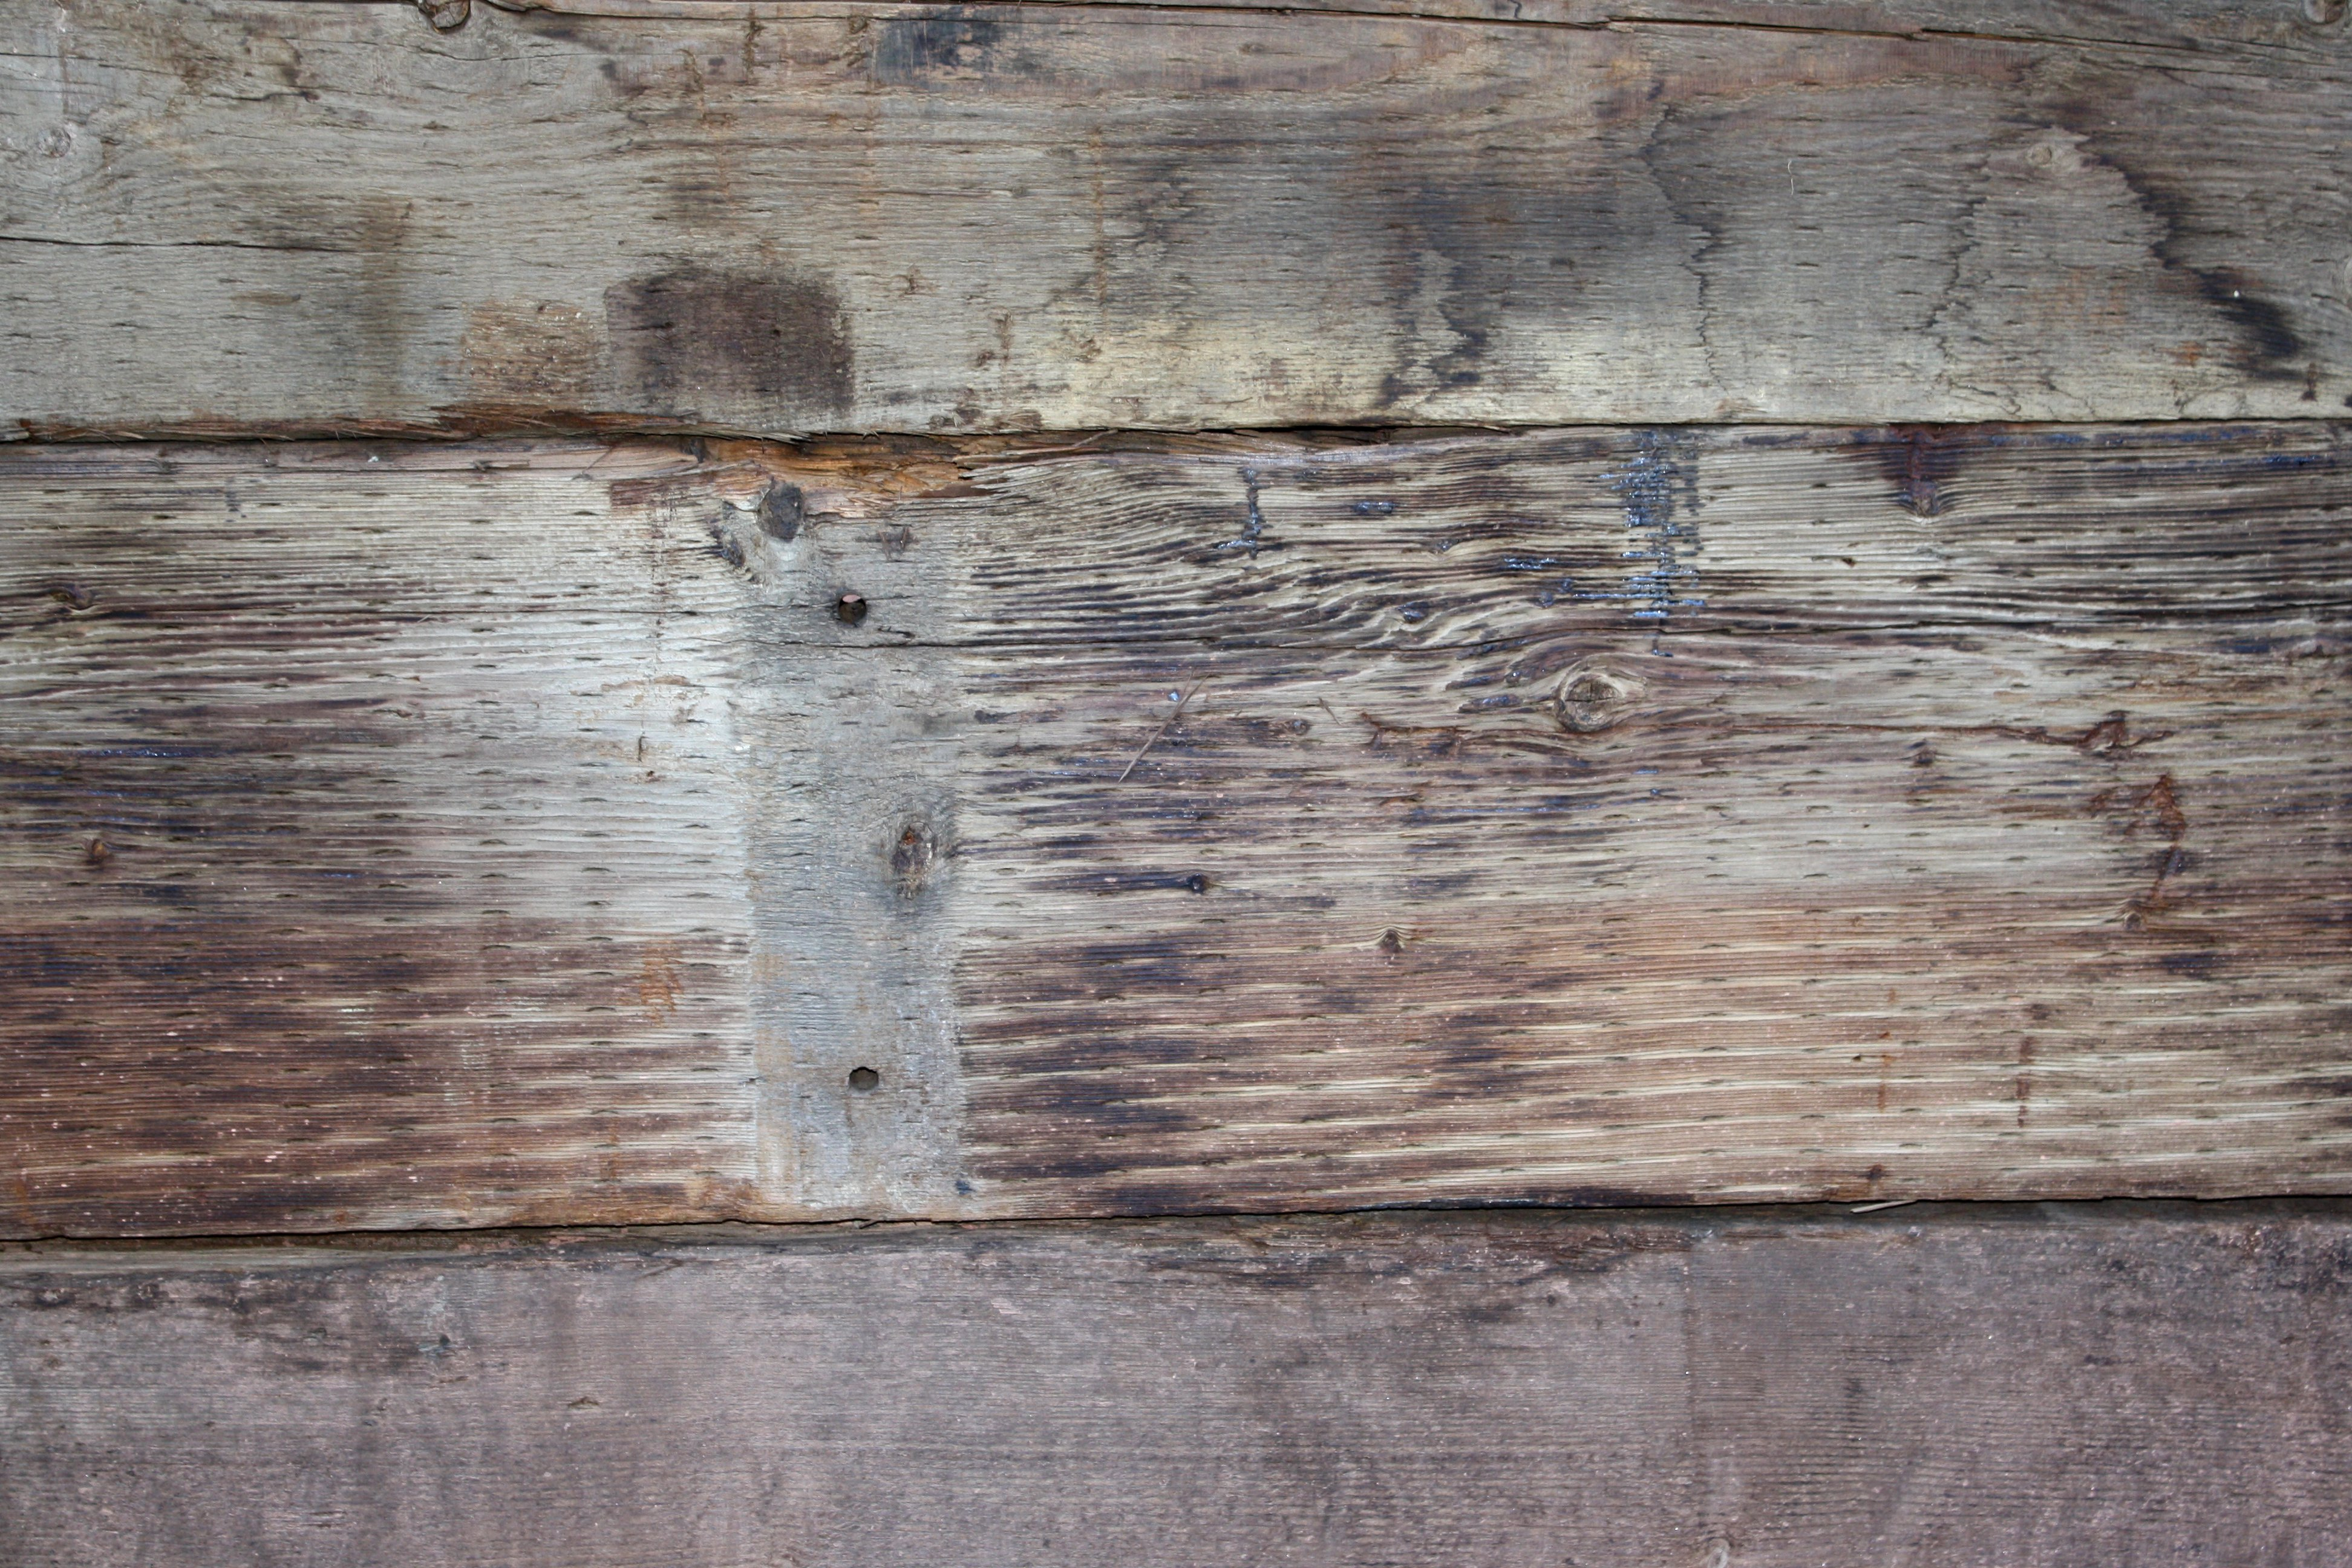 Old wooden boards close up texture picture free